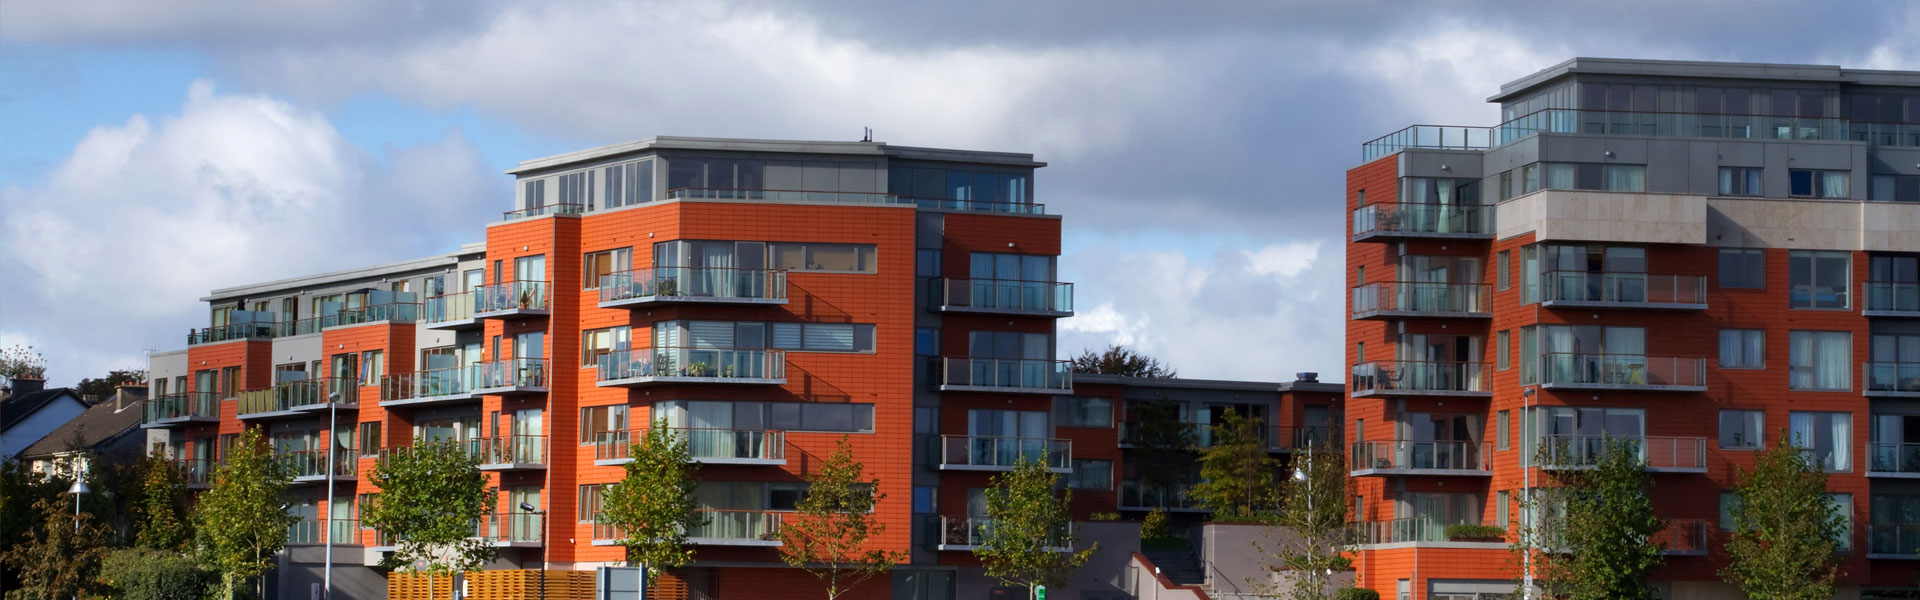 professional Commercial property management in Ballinalack